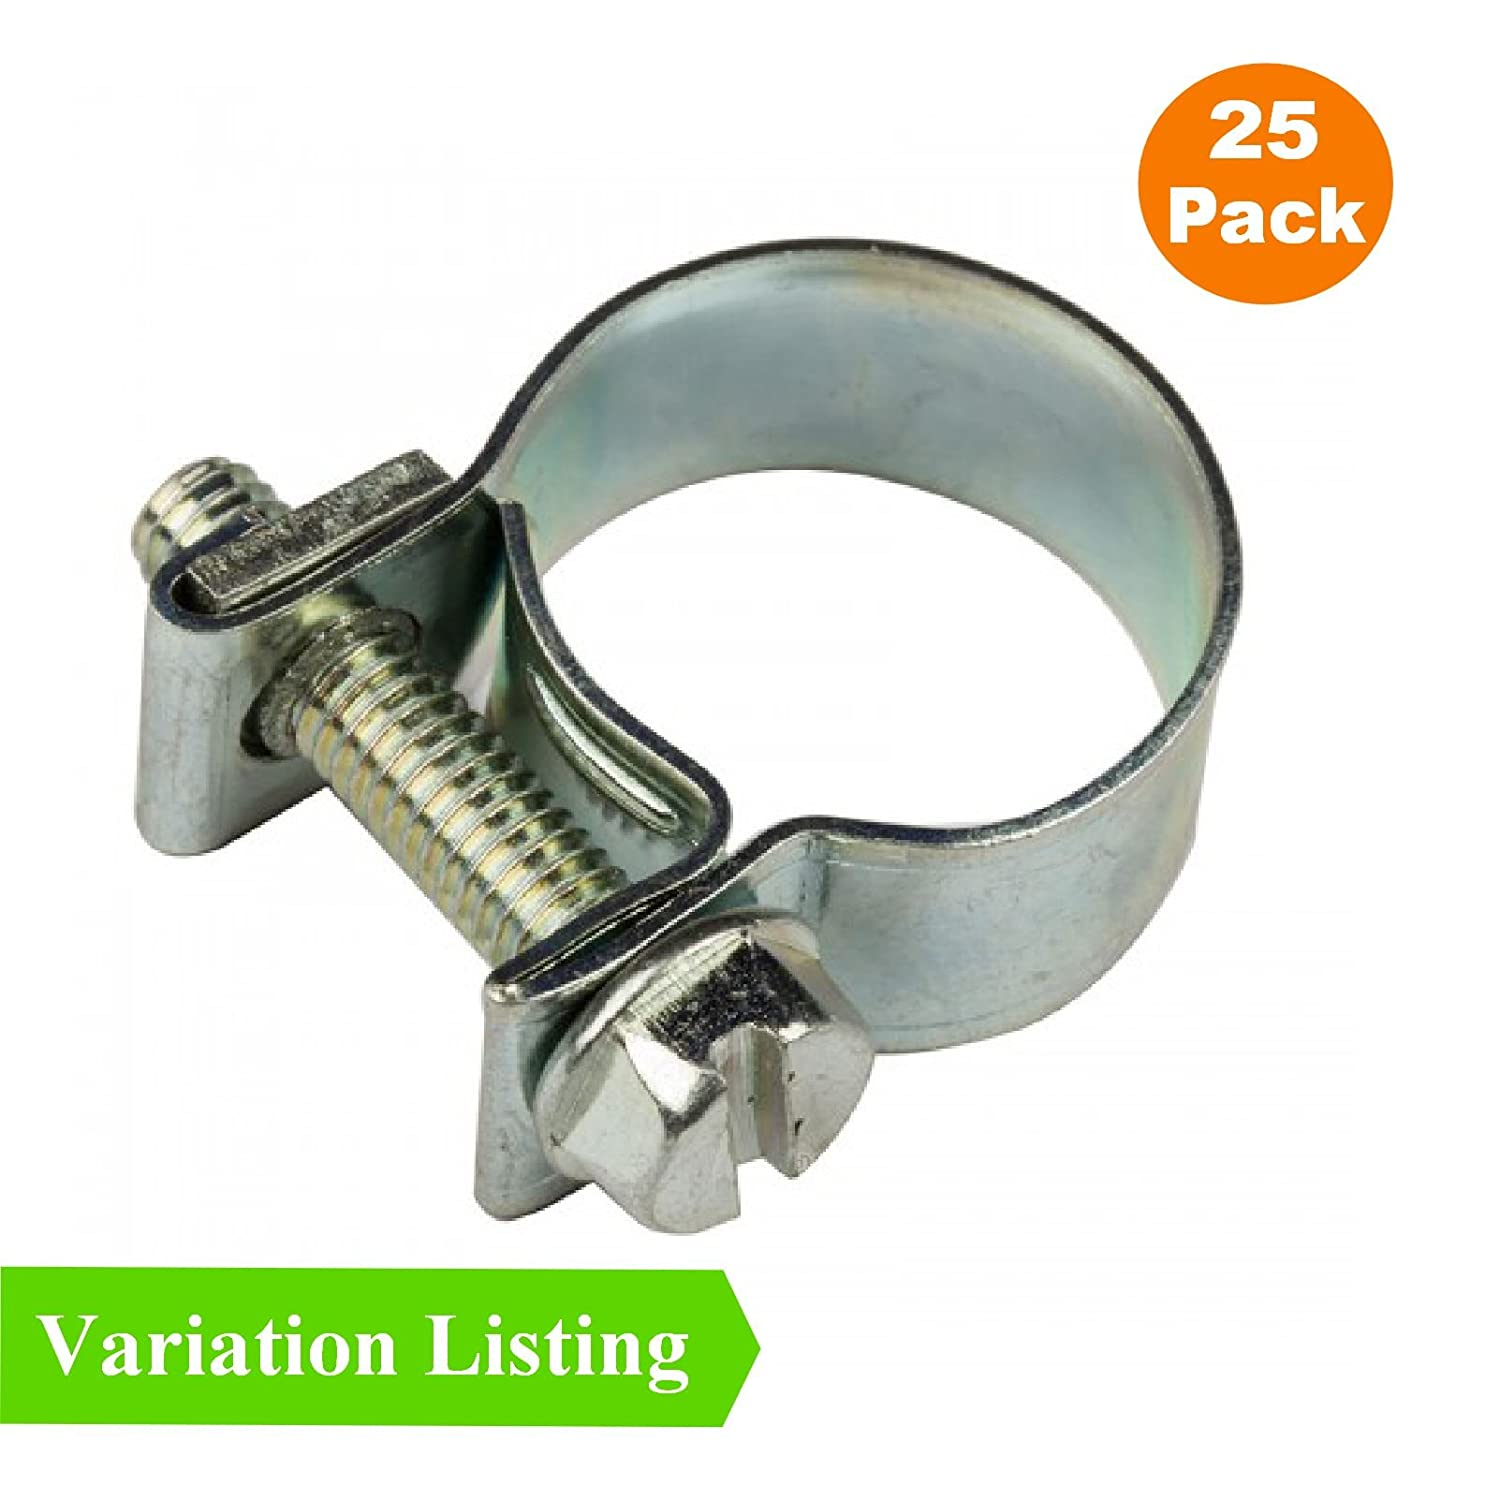 25 x Mini Fuel Line Jubilee Hose Clips Clamps Diesel Petrol Pipe Coolant Radiator [ 8 - 10mm ] Homesmart